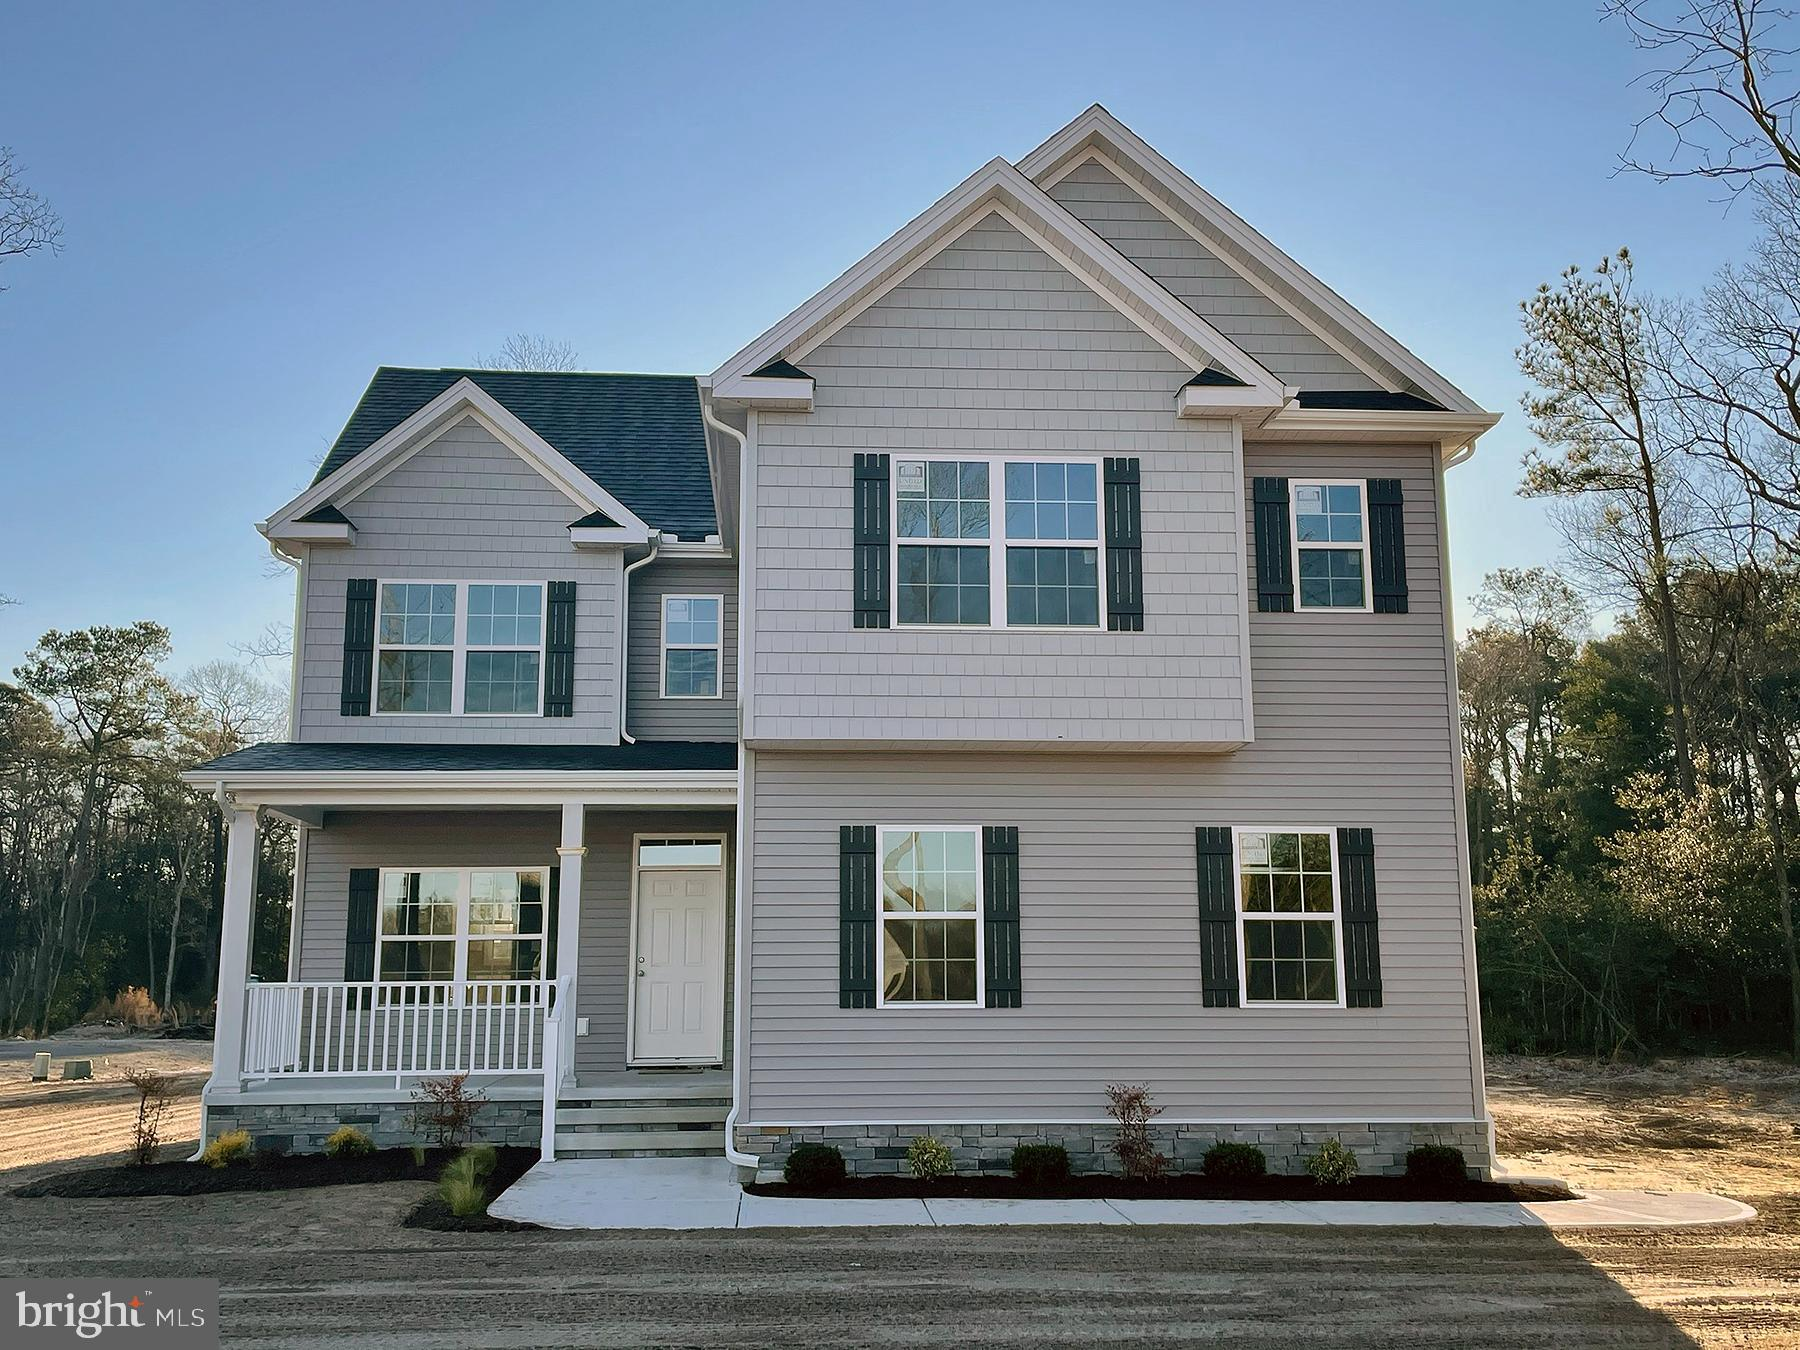 New Home - almost complete in the community of Layfield Woods, surrounded by gorgeous new custom hom